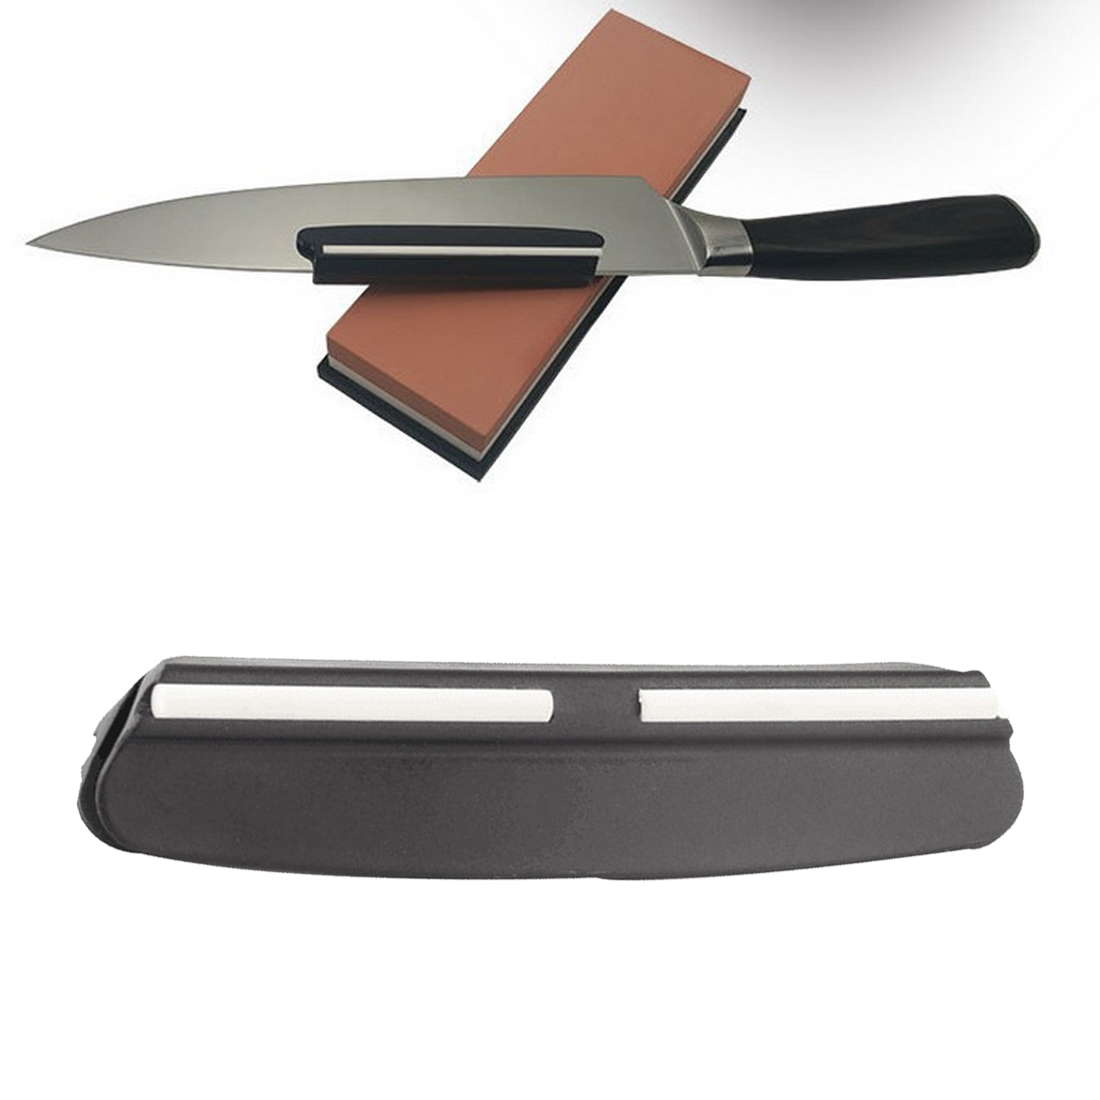 New Knife Sharpener Angle Guide Whetstone For Sharpening Home Living Practical Accessories Tools